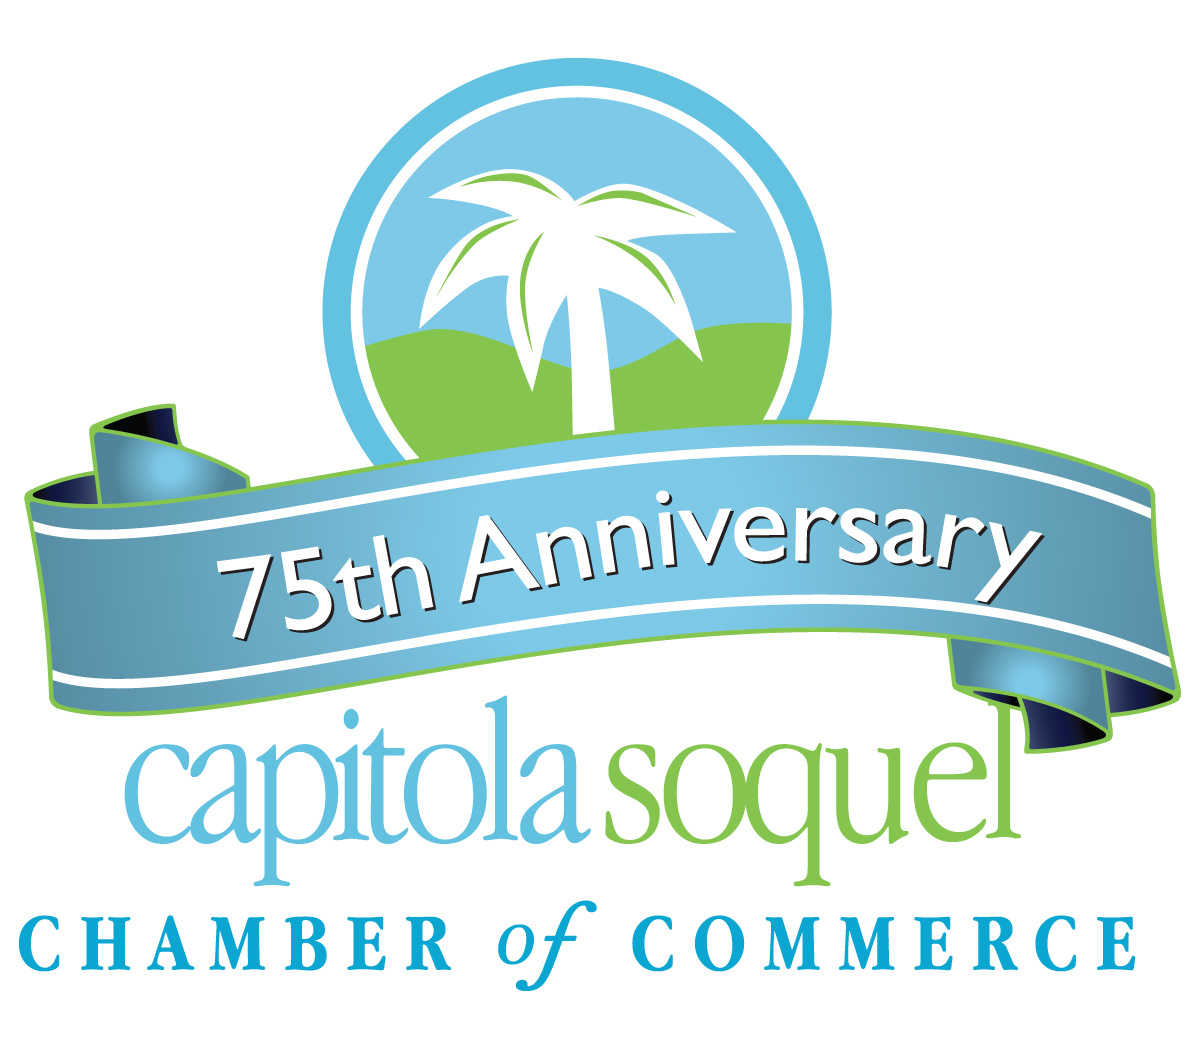 Capitola Soquel Chamber of Commerce